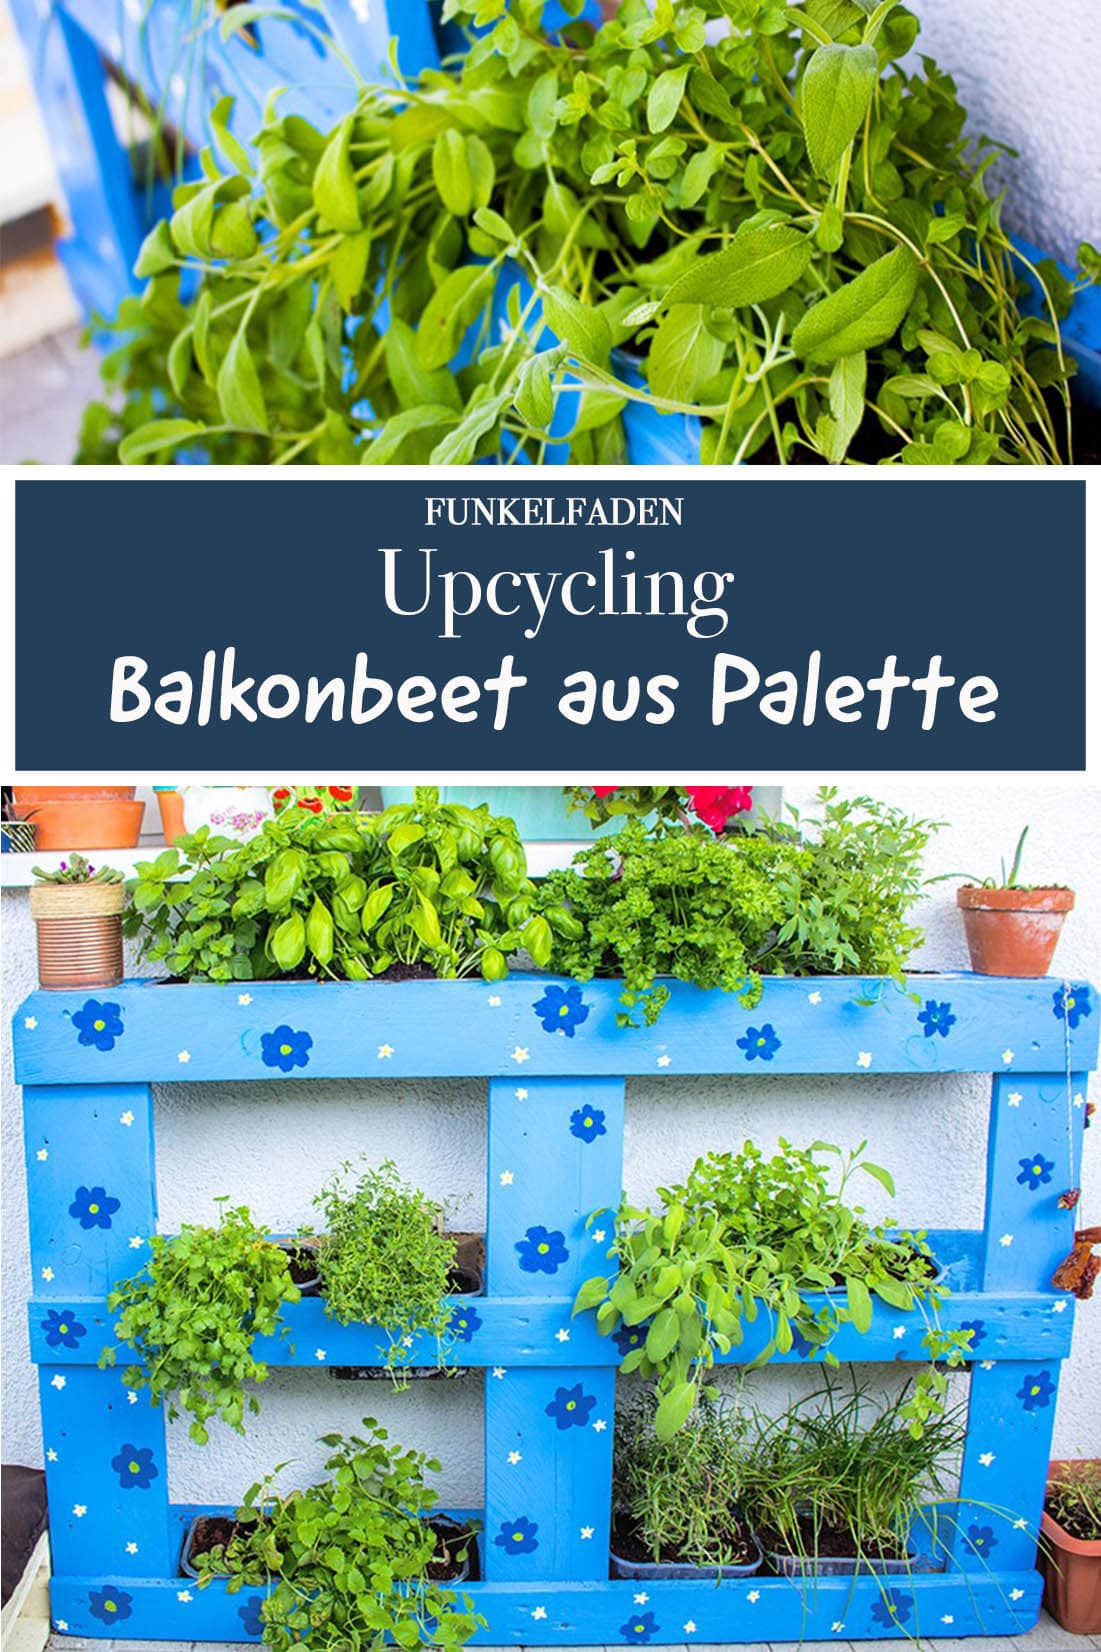 upcycling anleitung balkonbeet aus einer palette bauen anleitungen do it yourself garten. Black Bedroom Furniture Sets. Home Design Ideas